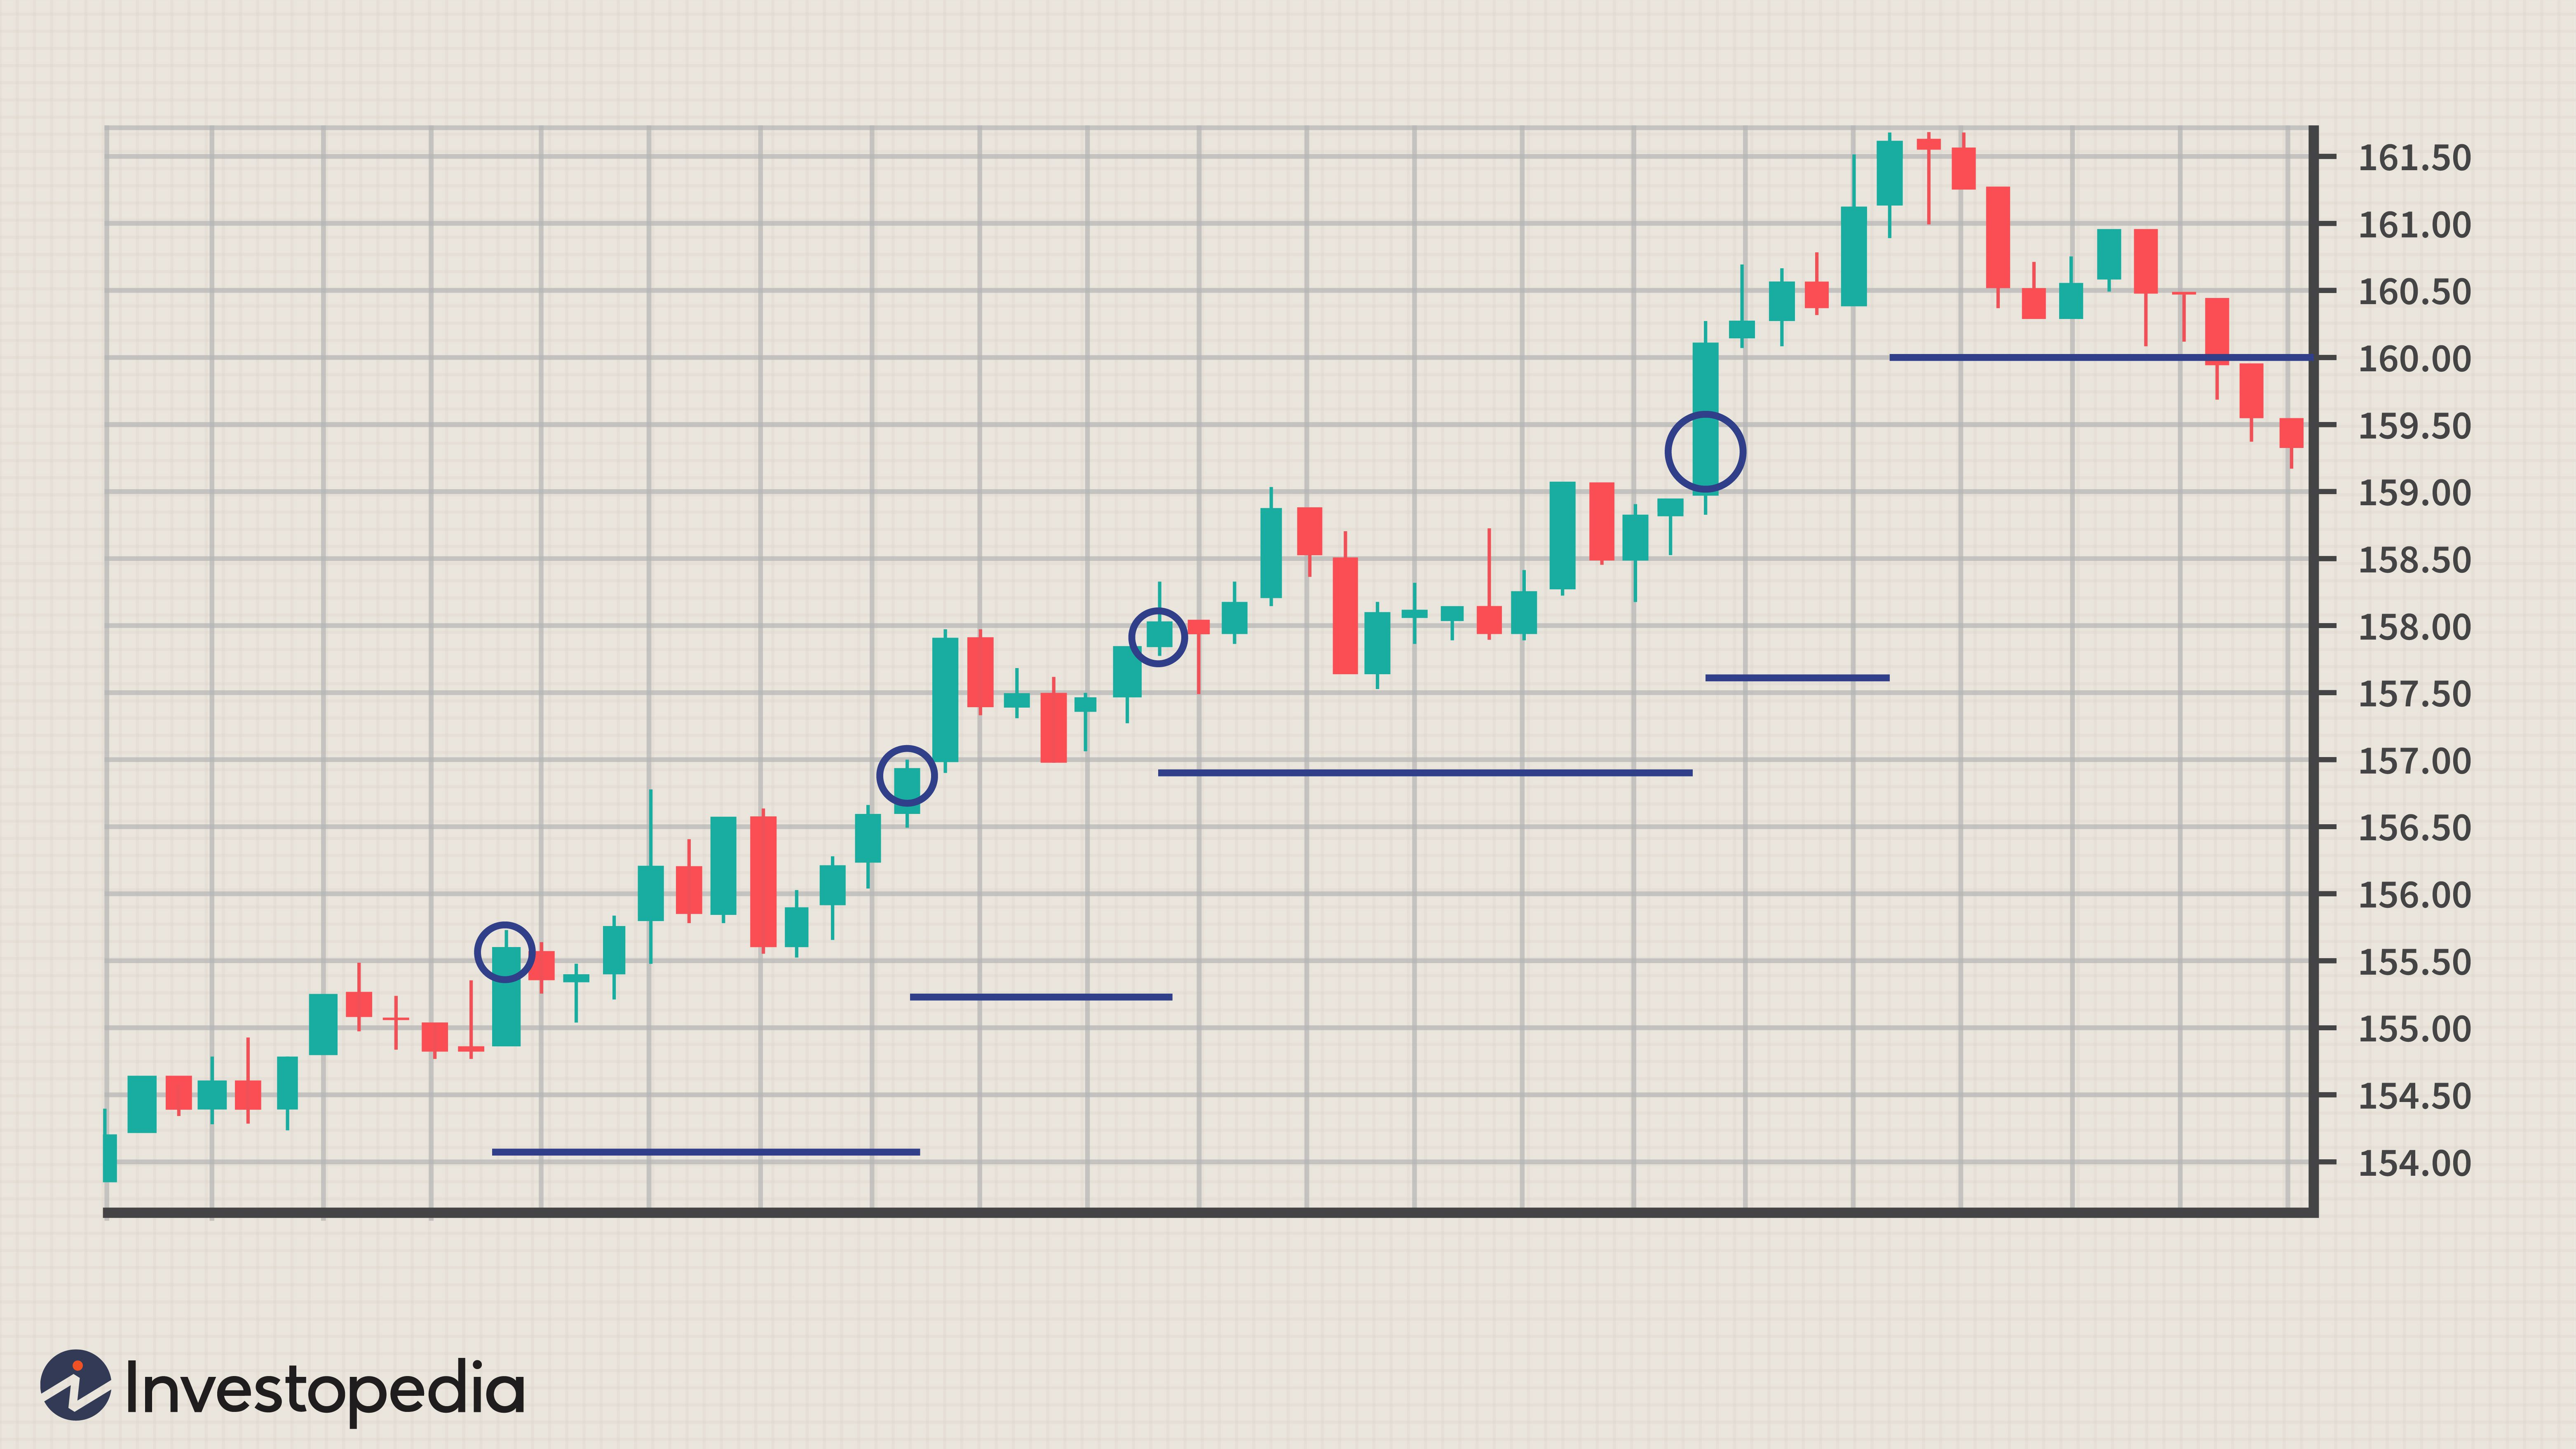 Two stage growth model investopedia forex nuveen investments competitors creed